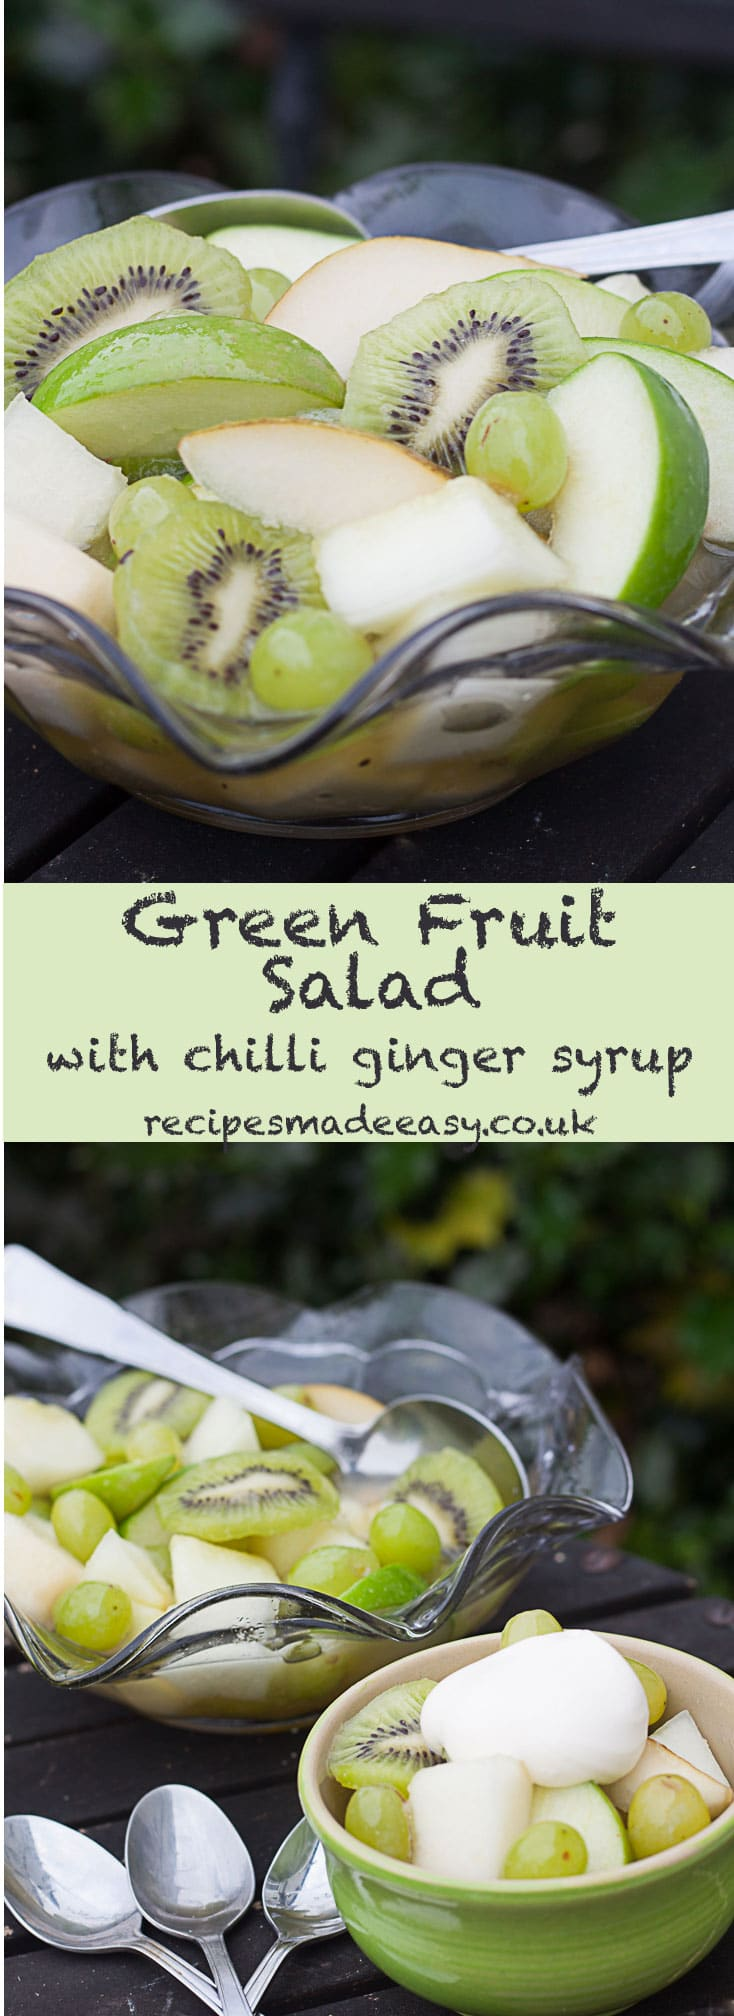 Green fruit salad with chilli ginger syrup - by Recipes Made Easy